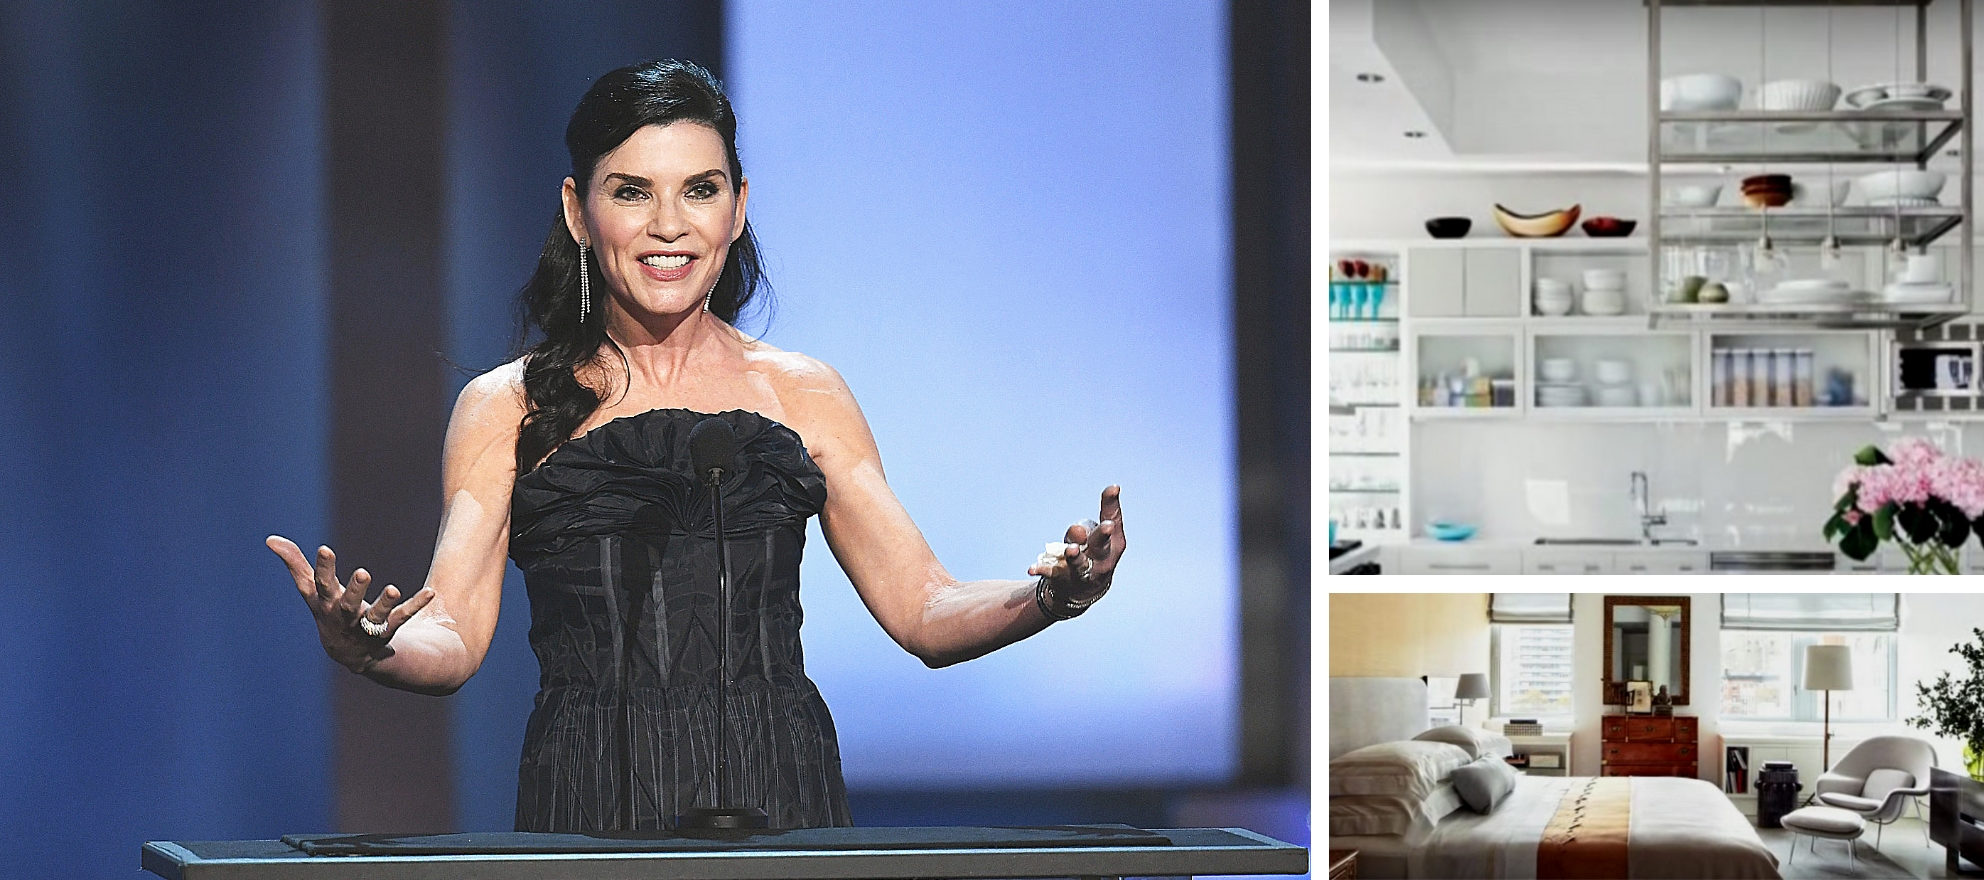 'The Good Wife' actress Julianna Margulies puts condo up for sale